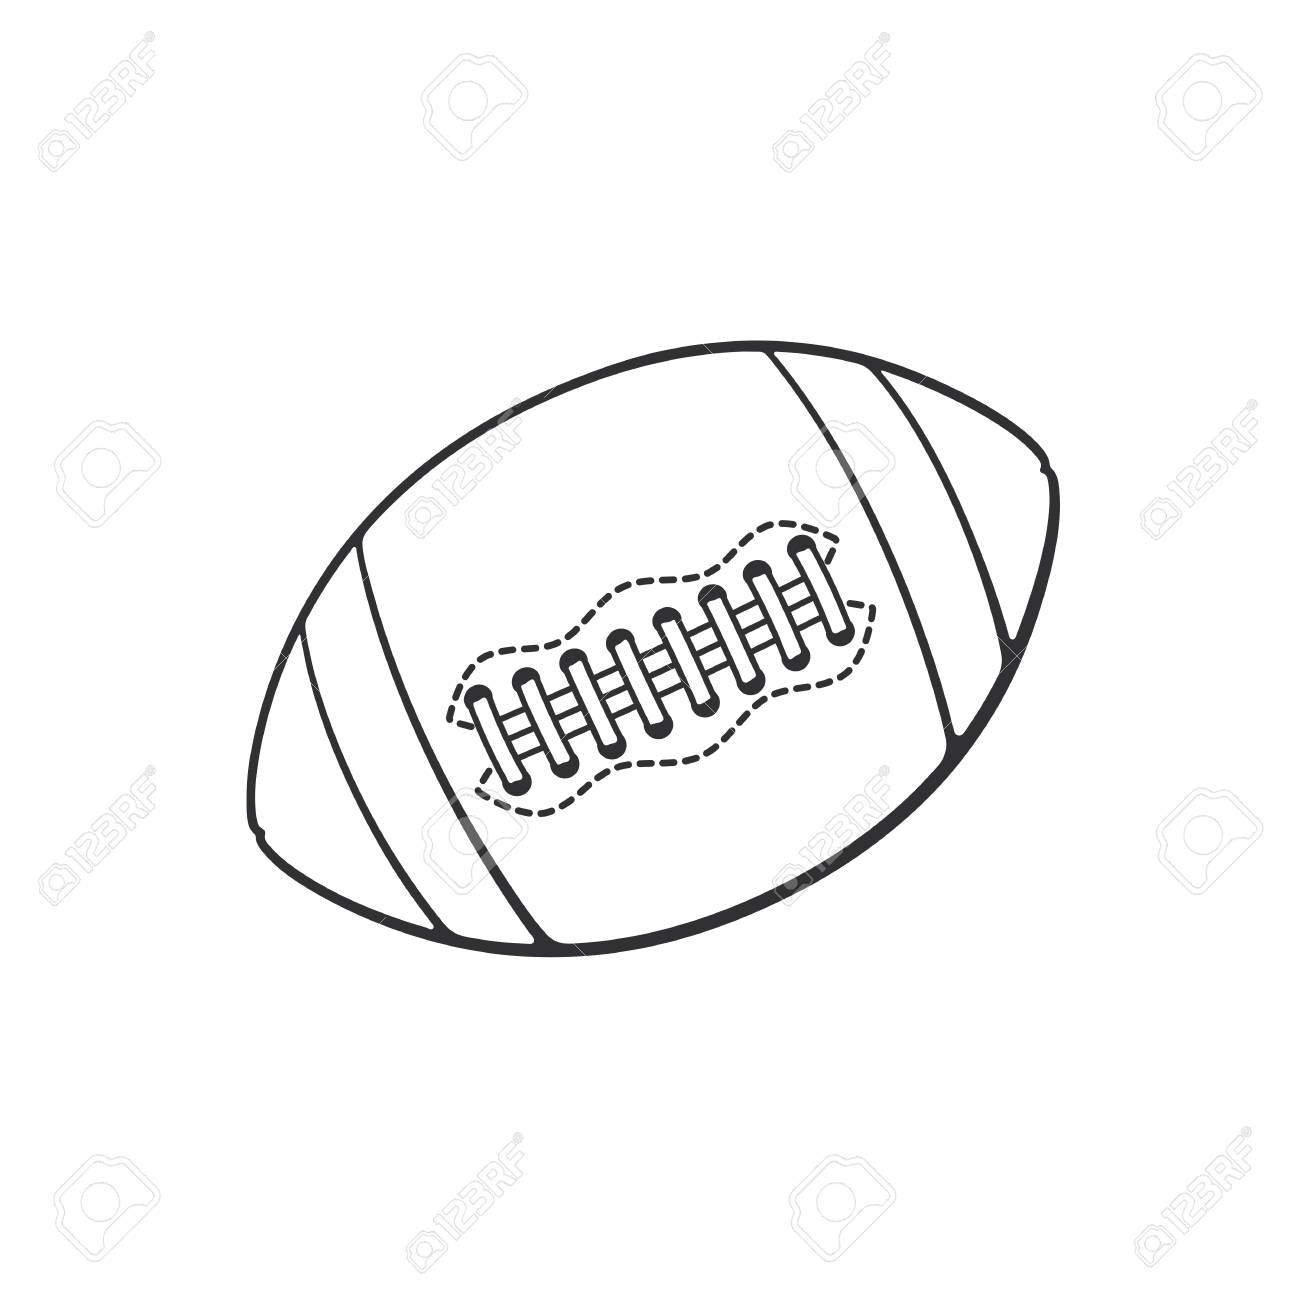 Hand drawn doodle of leather american football or rugby ball sports equipment cartoon sketch decoration for greeting cards posters emblems wallpapers